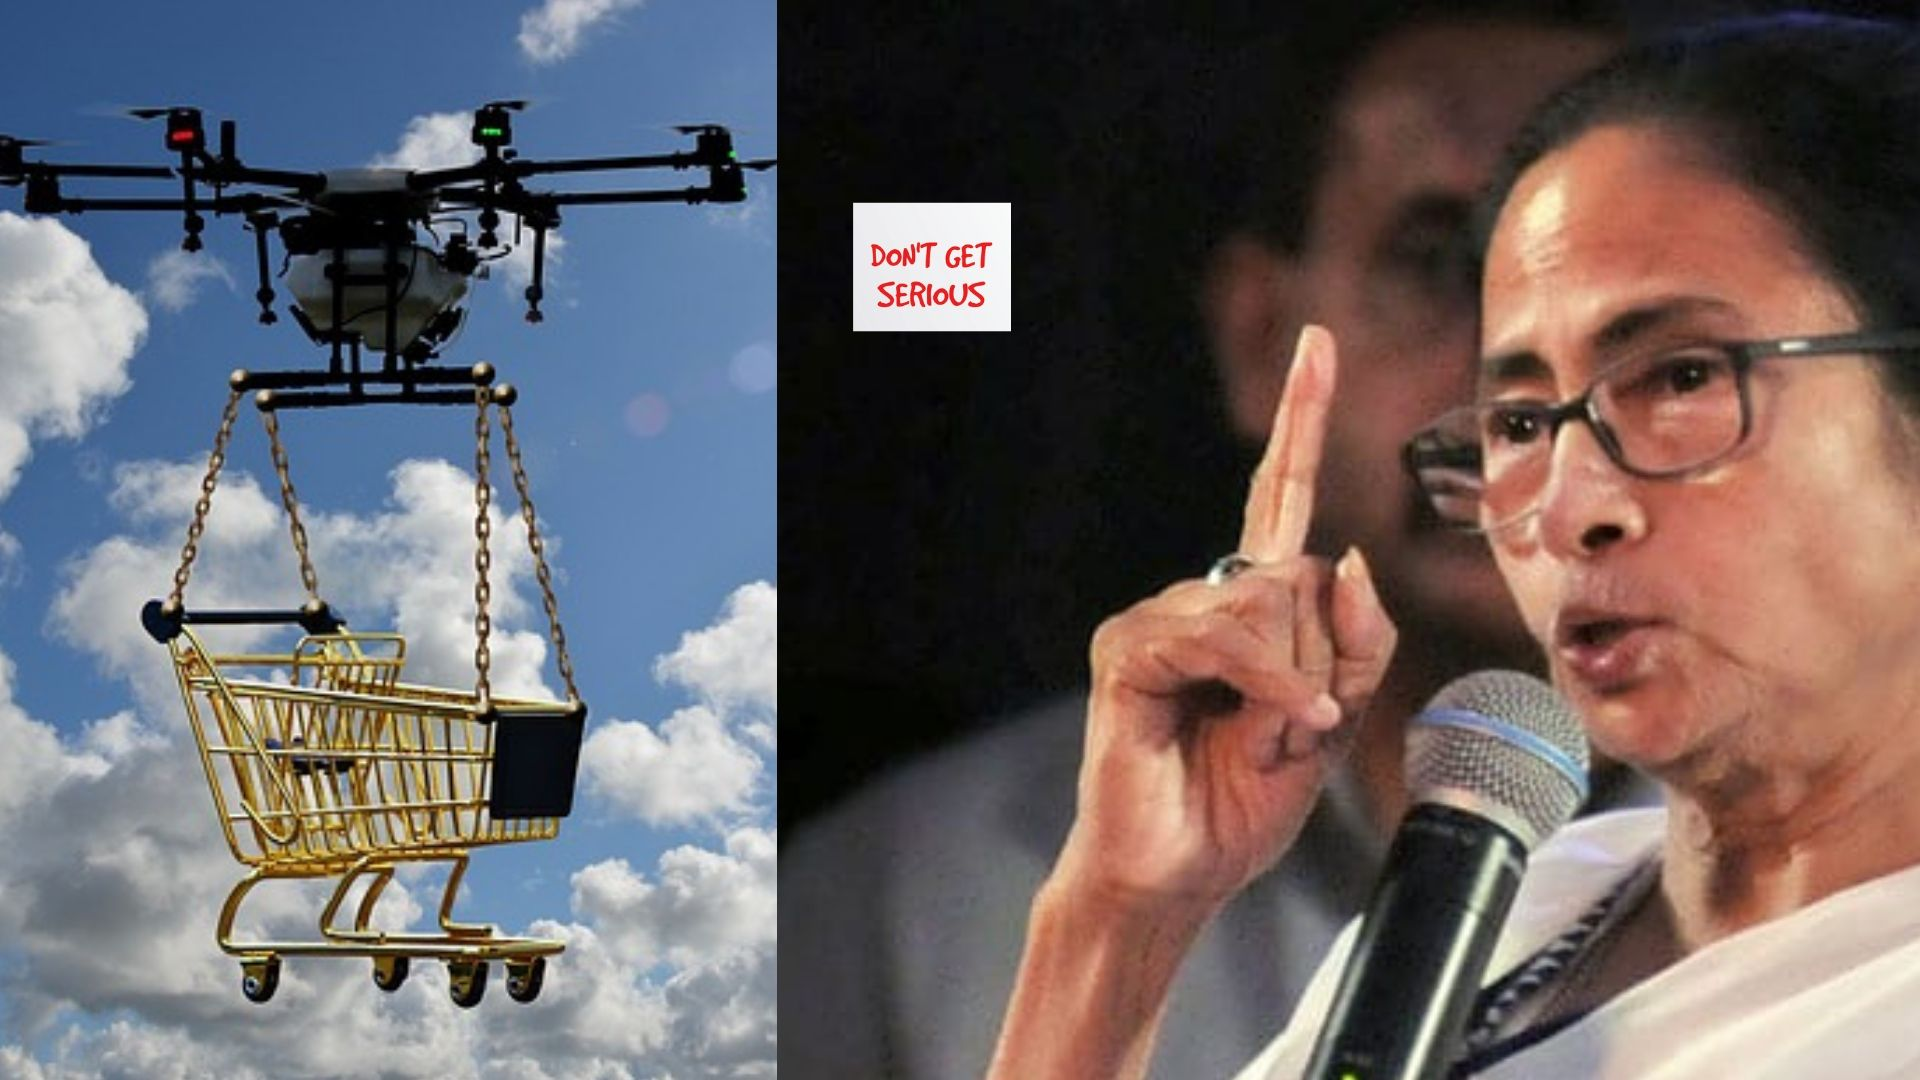 West Bengal Is Planning A Drone Delivery System for Sending Medicine